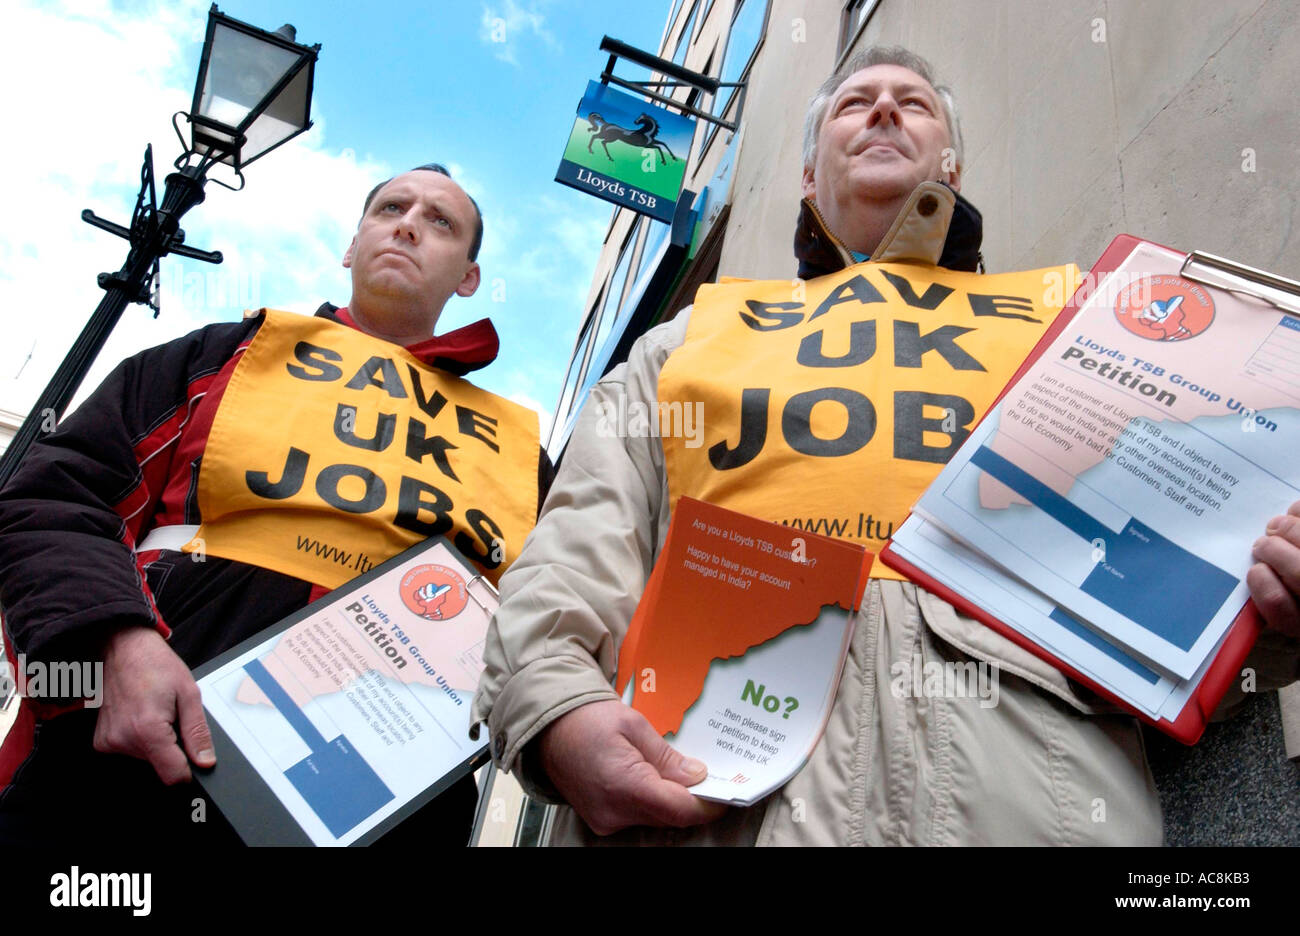 Trade union members protest about jobs being lost abroad - Stock Image